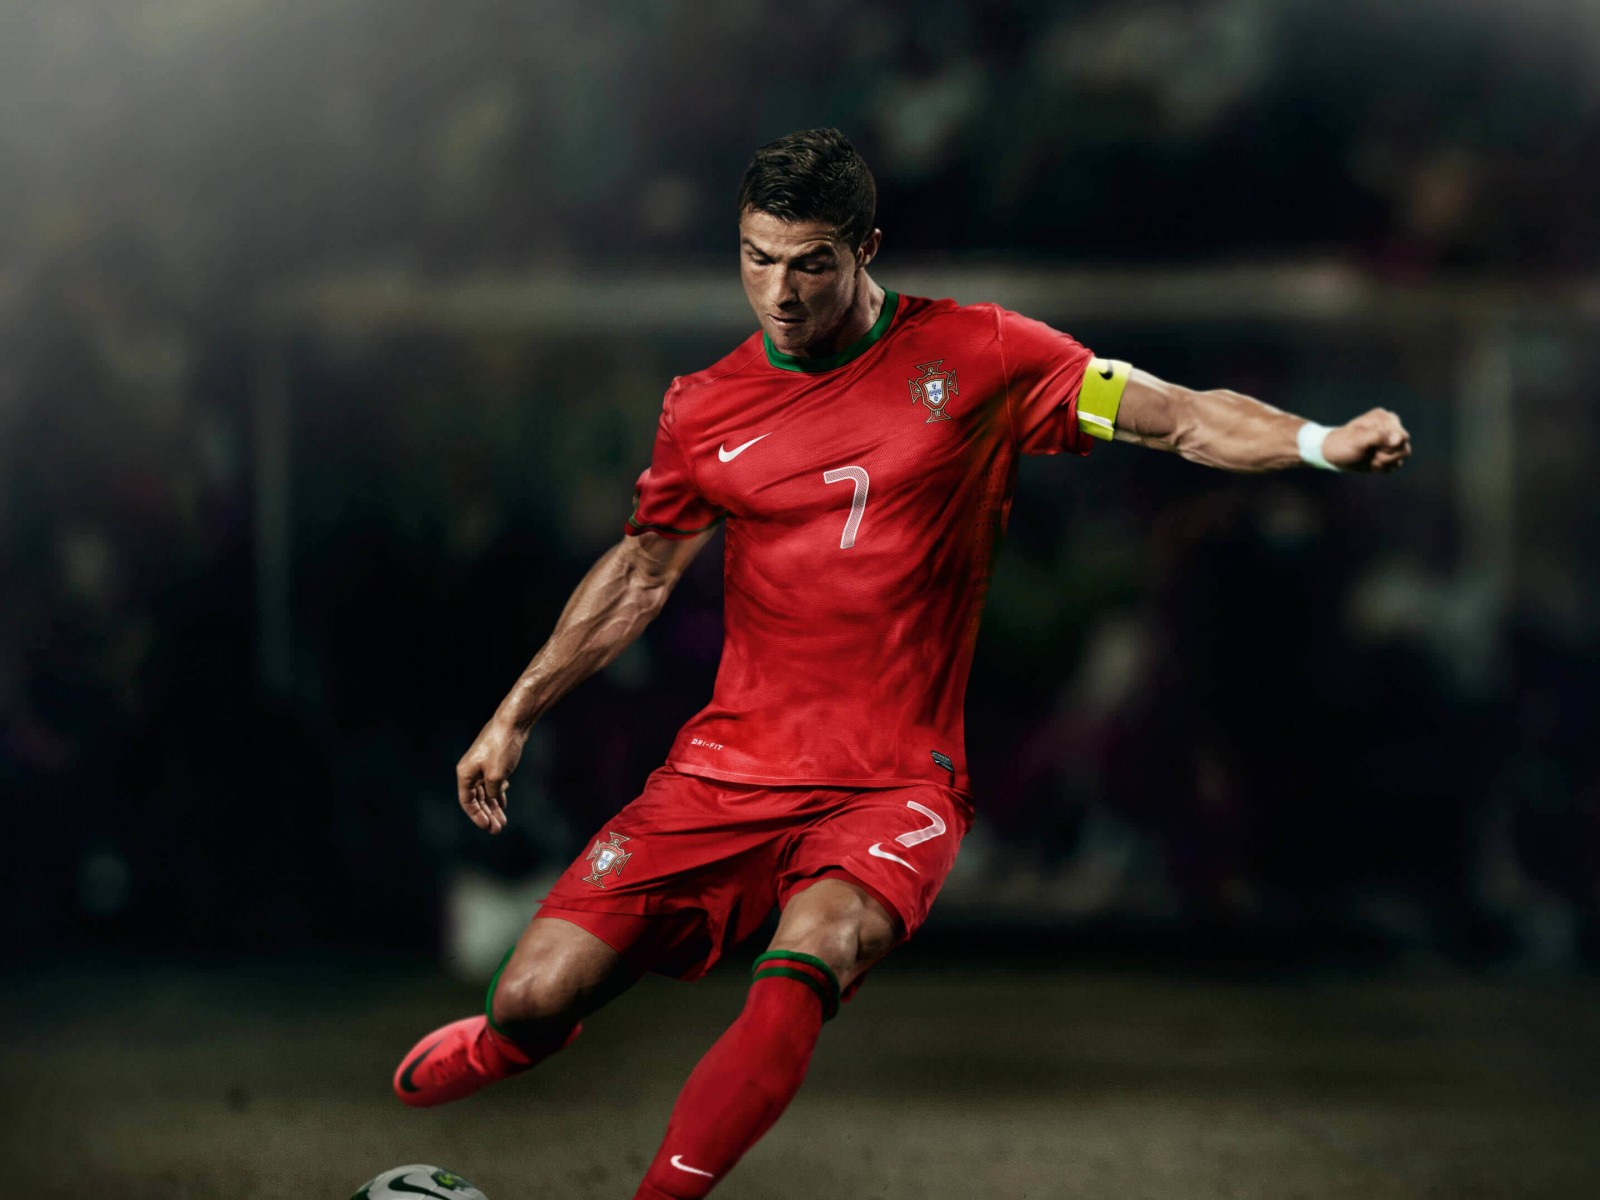 Cristiano Ronaldo In Portugal Jersey Wallpaper for Desktop 1600x1200